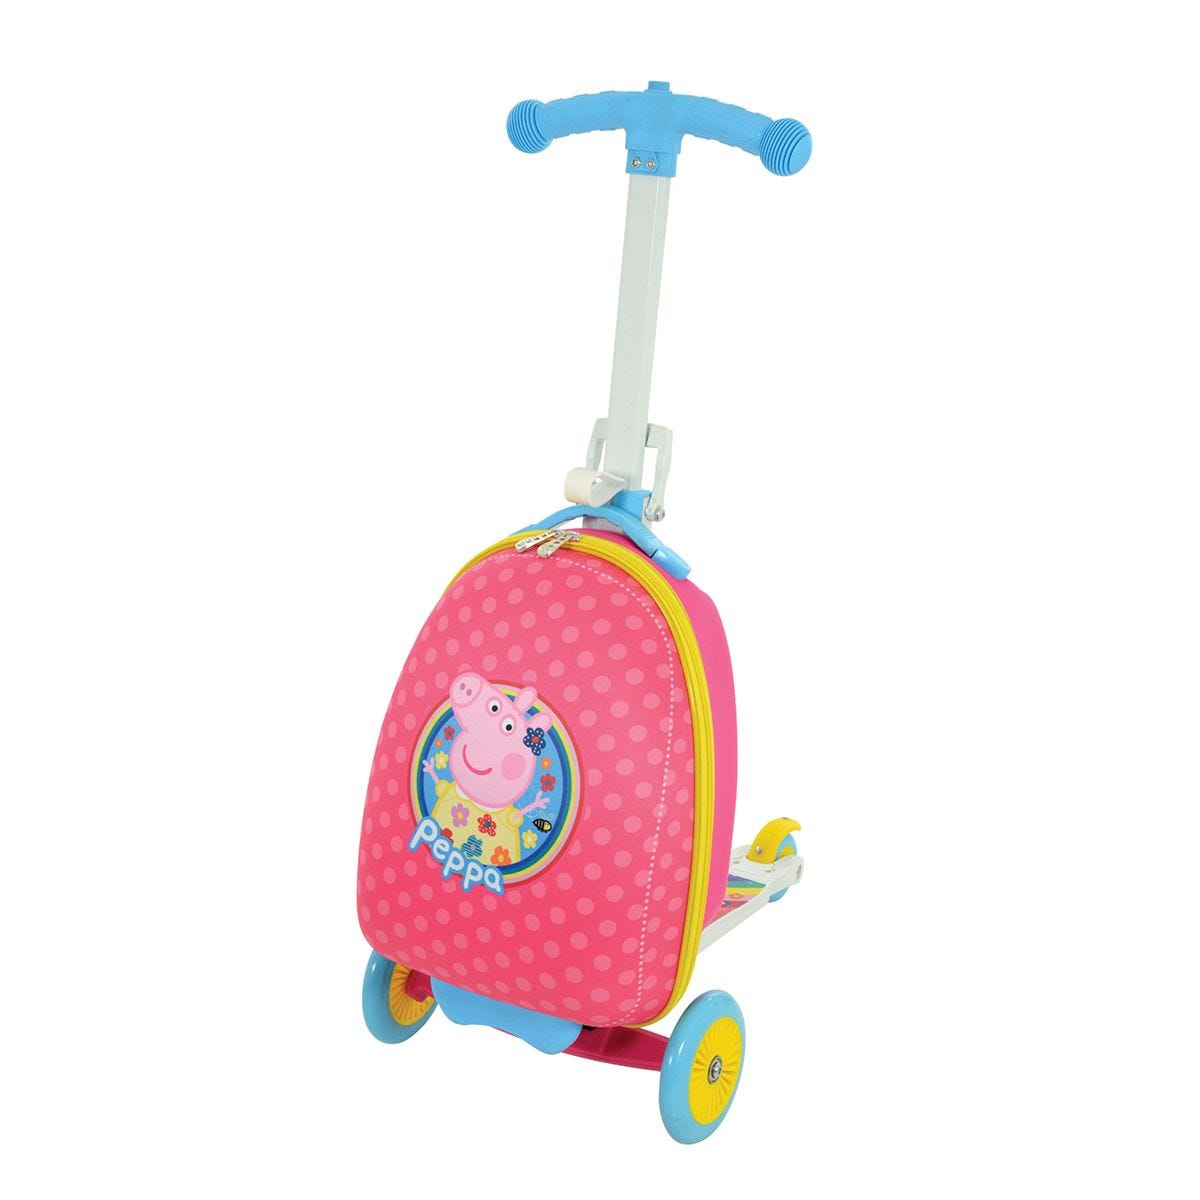 Peppa Pig 3in1 Scootin Suitcase